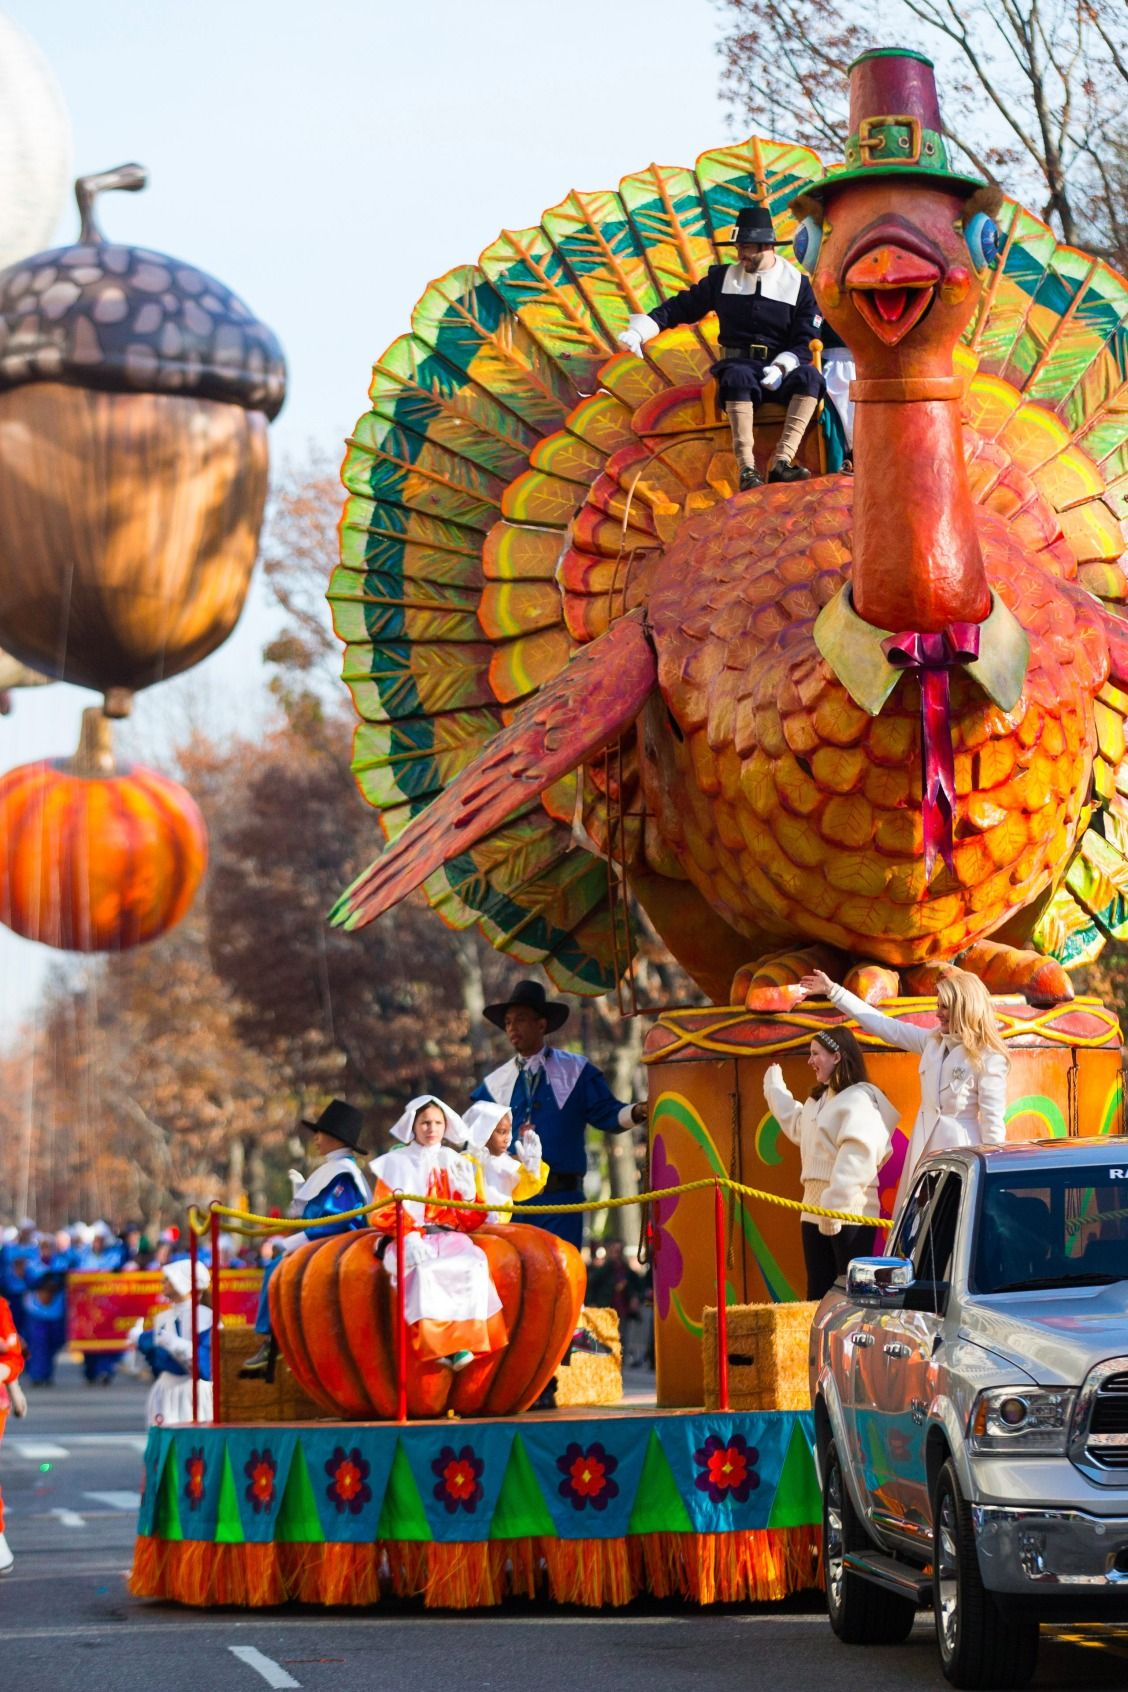 7 Mind Blowing Facts About The Macy S Thanksgiving Day Parade Macy S Thanksgiving Day Parade Thanksgiving Day Parade Macy S Thanksgiving Day Parade